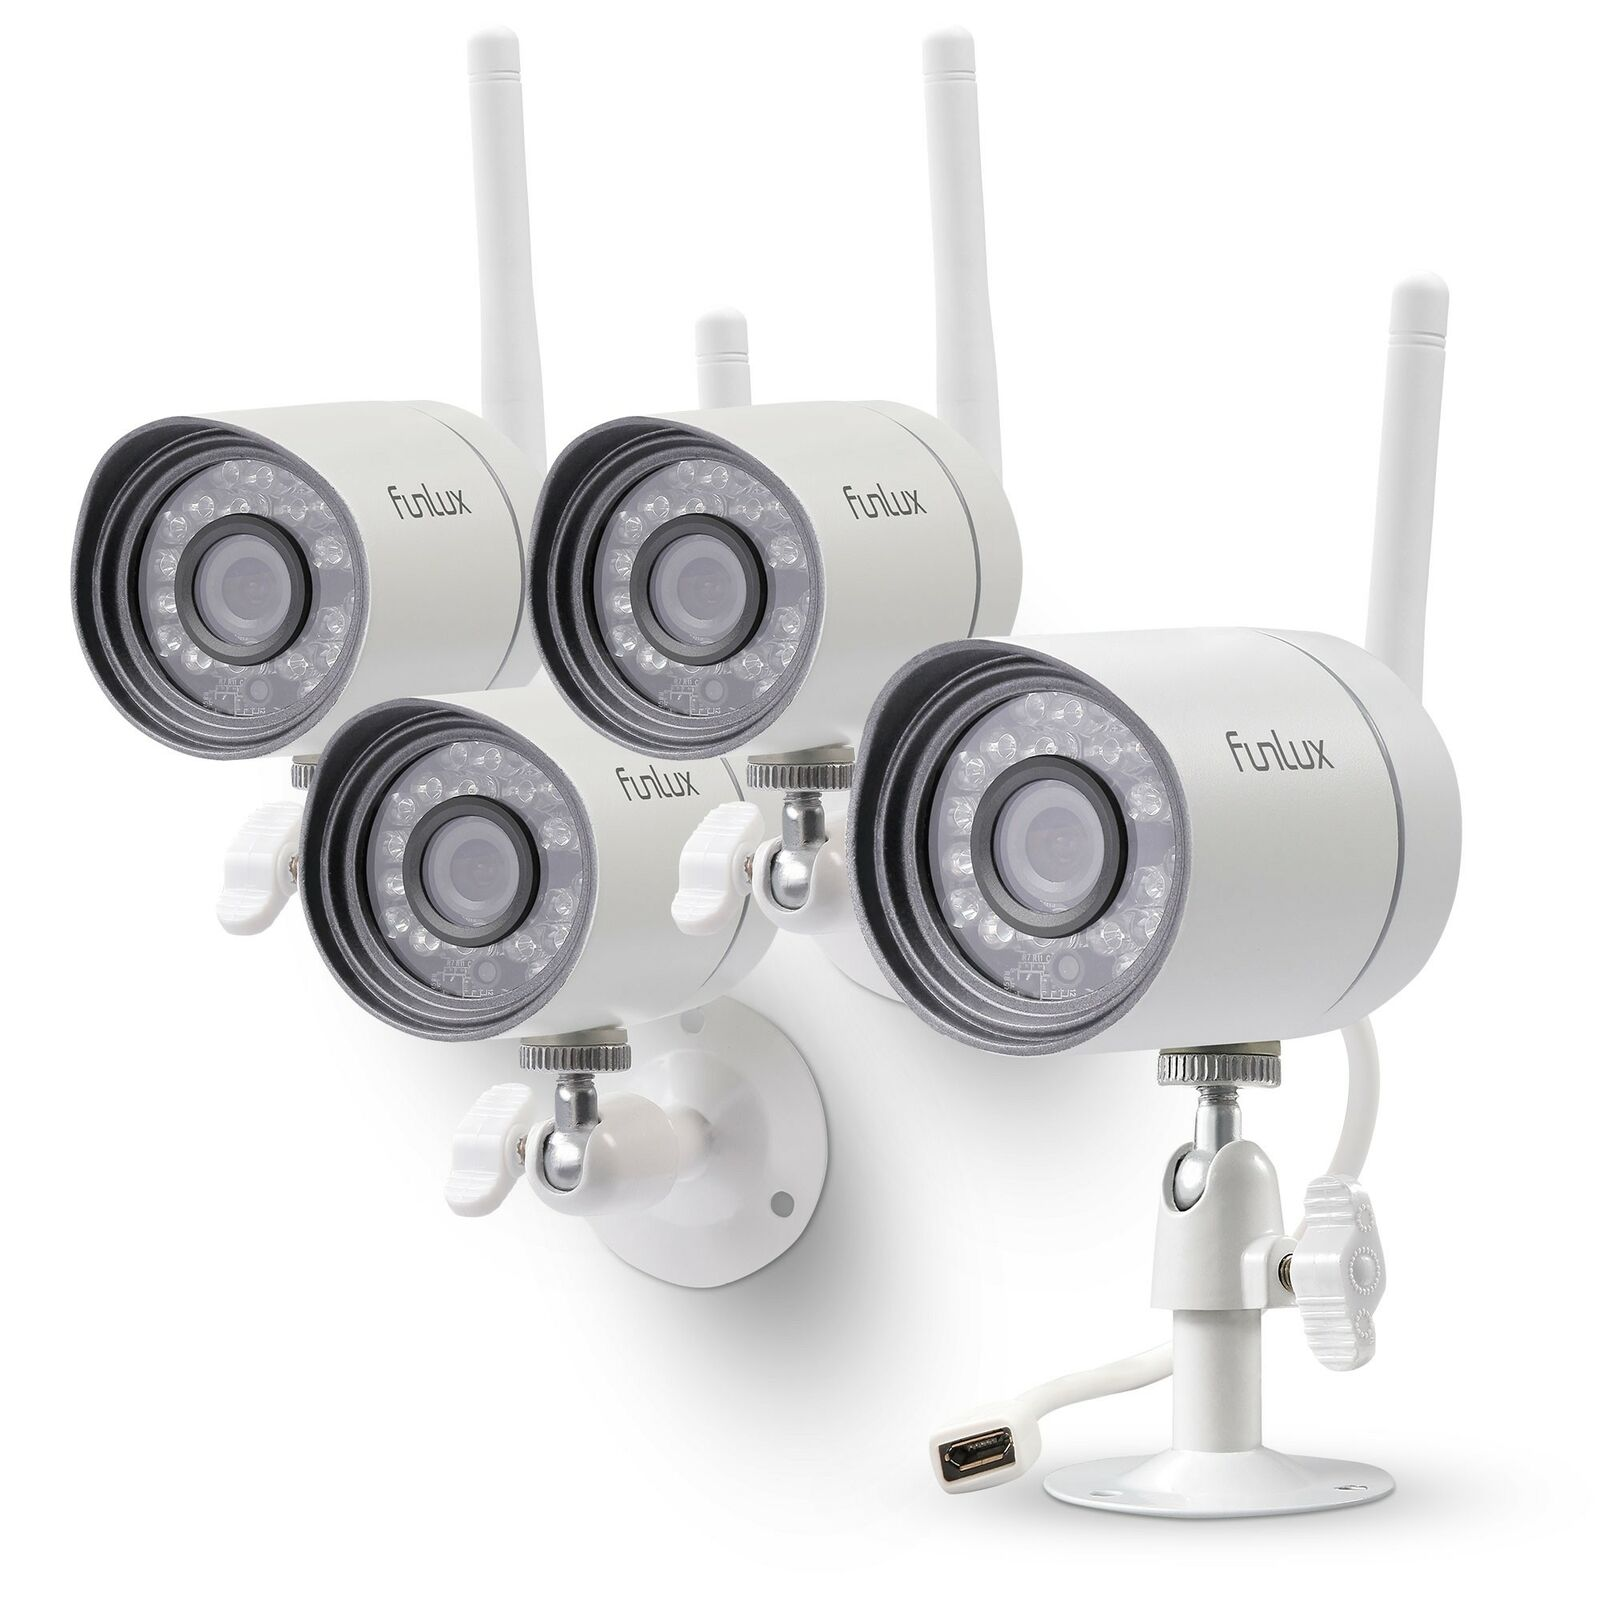 Funlux Wireless Security Camera System  Smart Home HD Indoor Outdoor WiFi 3 PACK